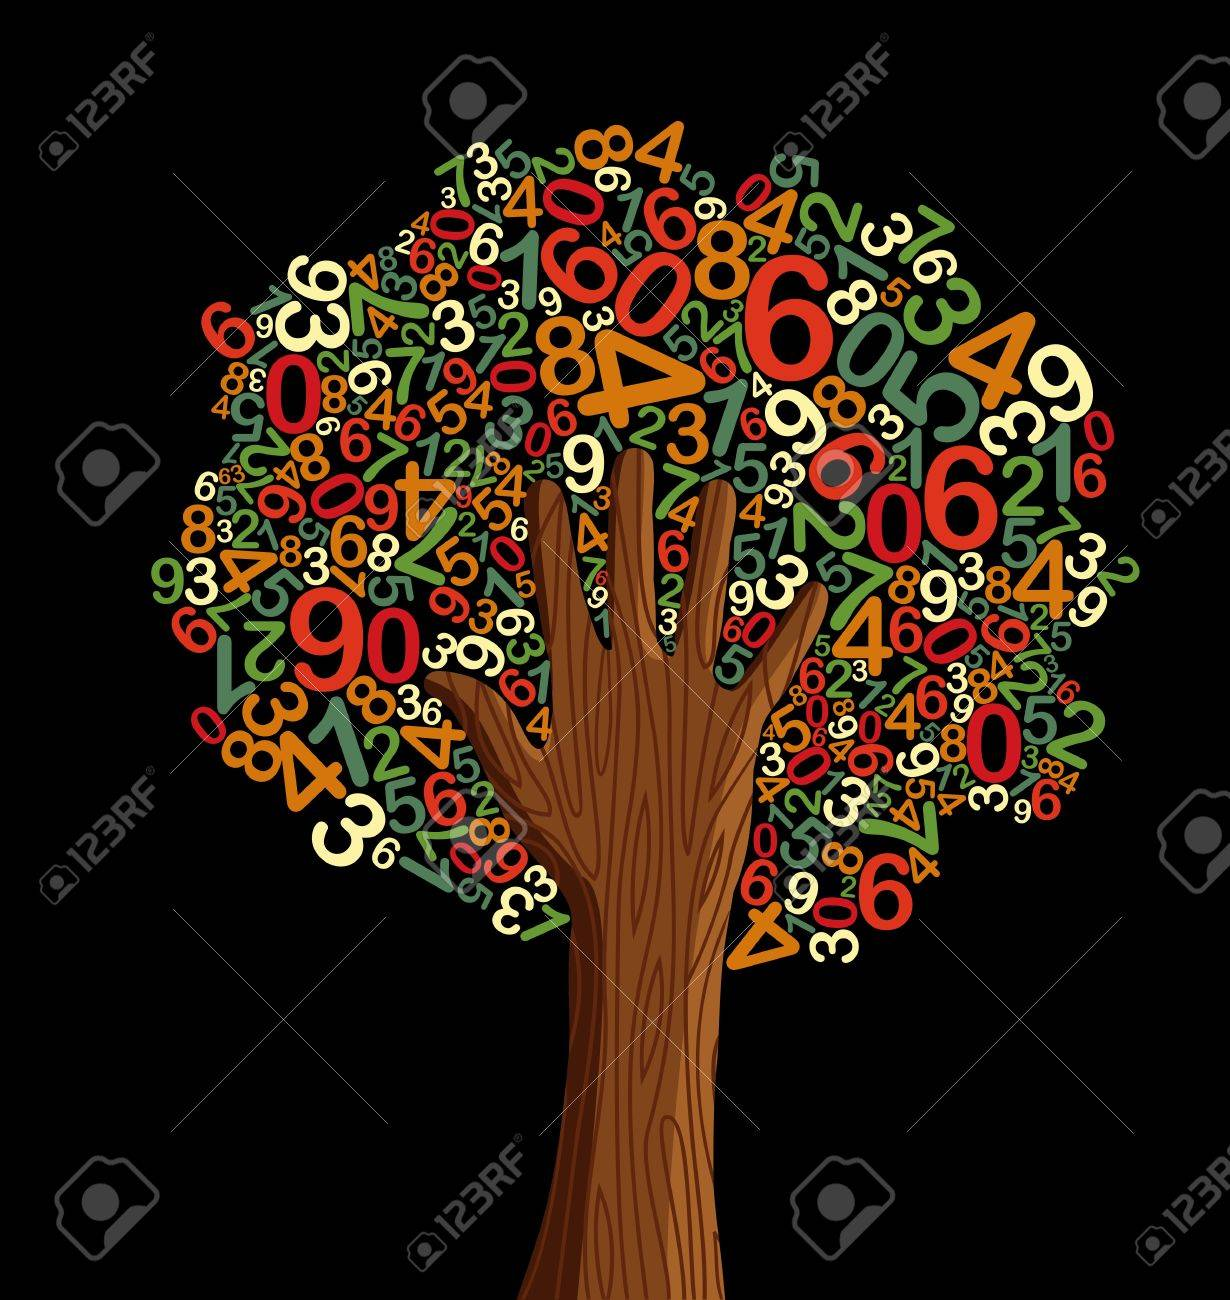 School education concept tree made with letters and human hand. Vector file layered for easy manipulation and custom coloring. Stock Vector - 14777585